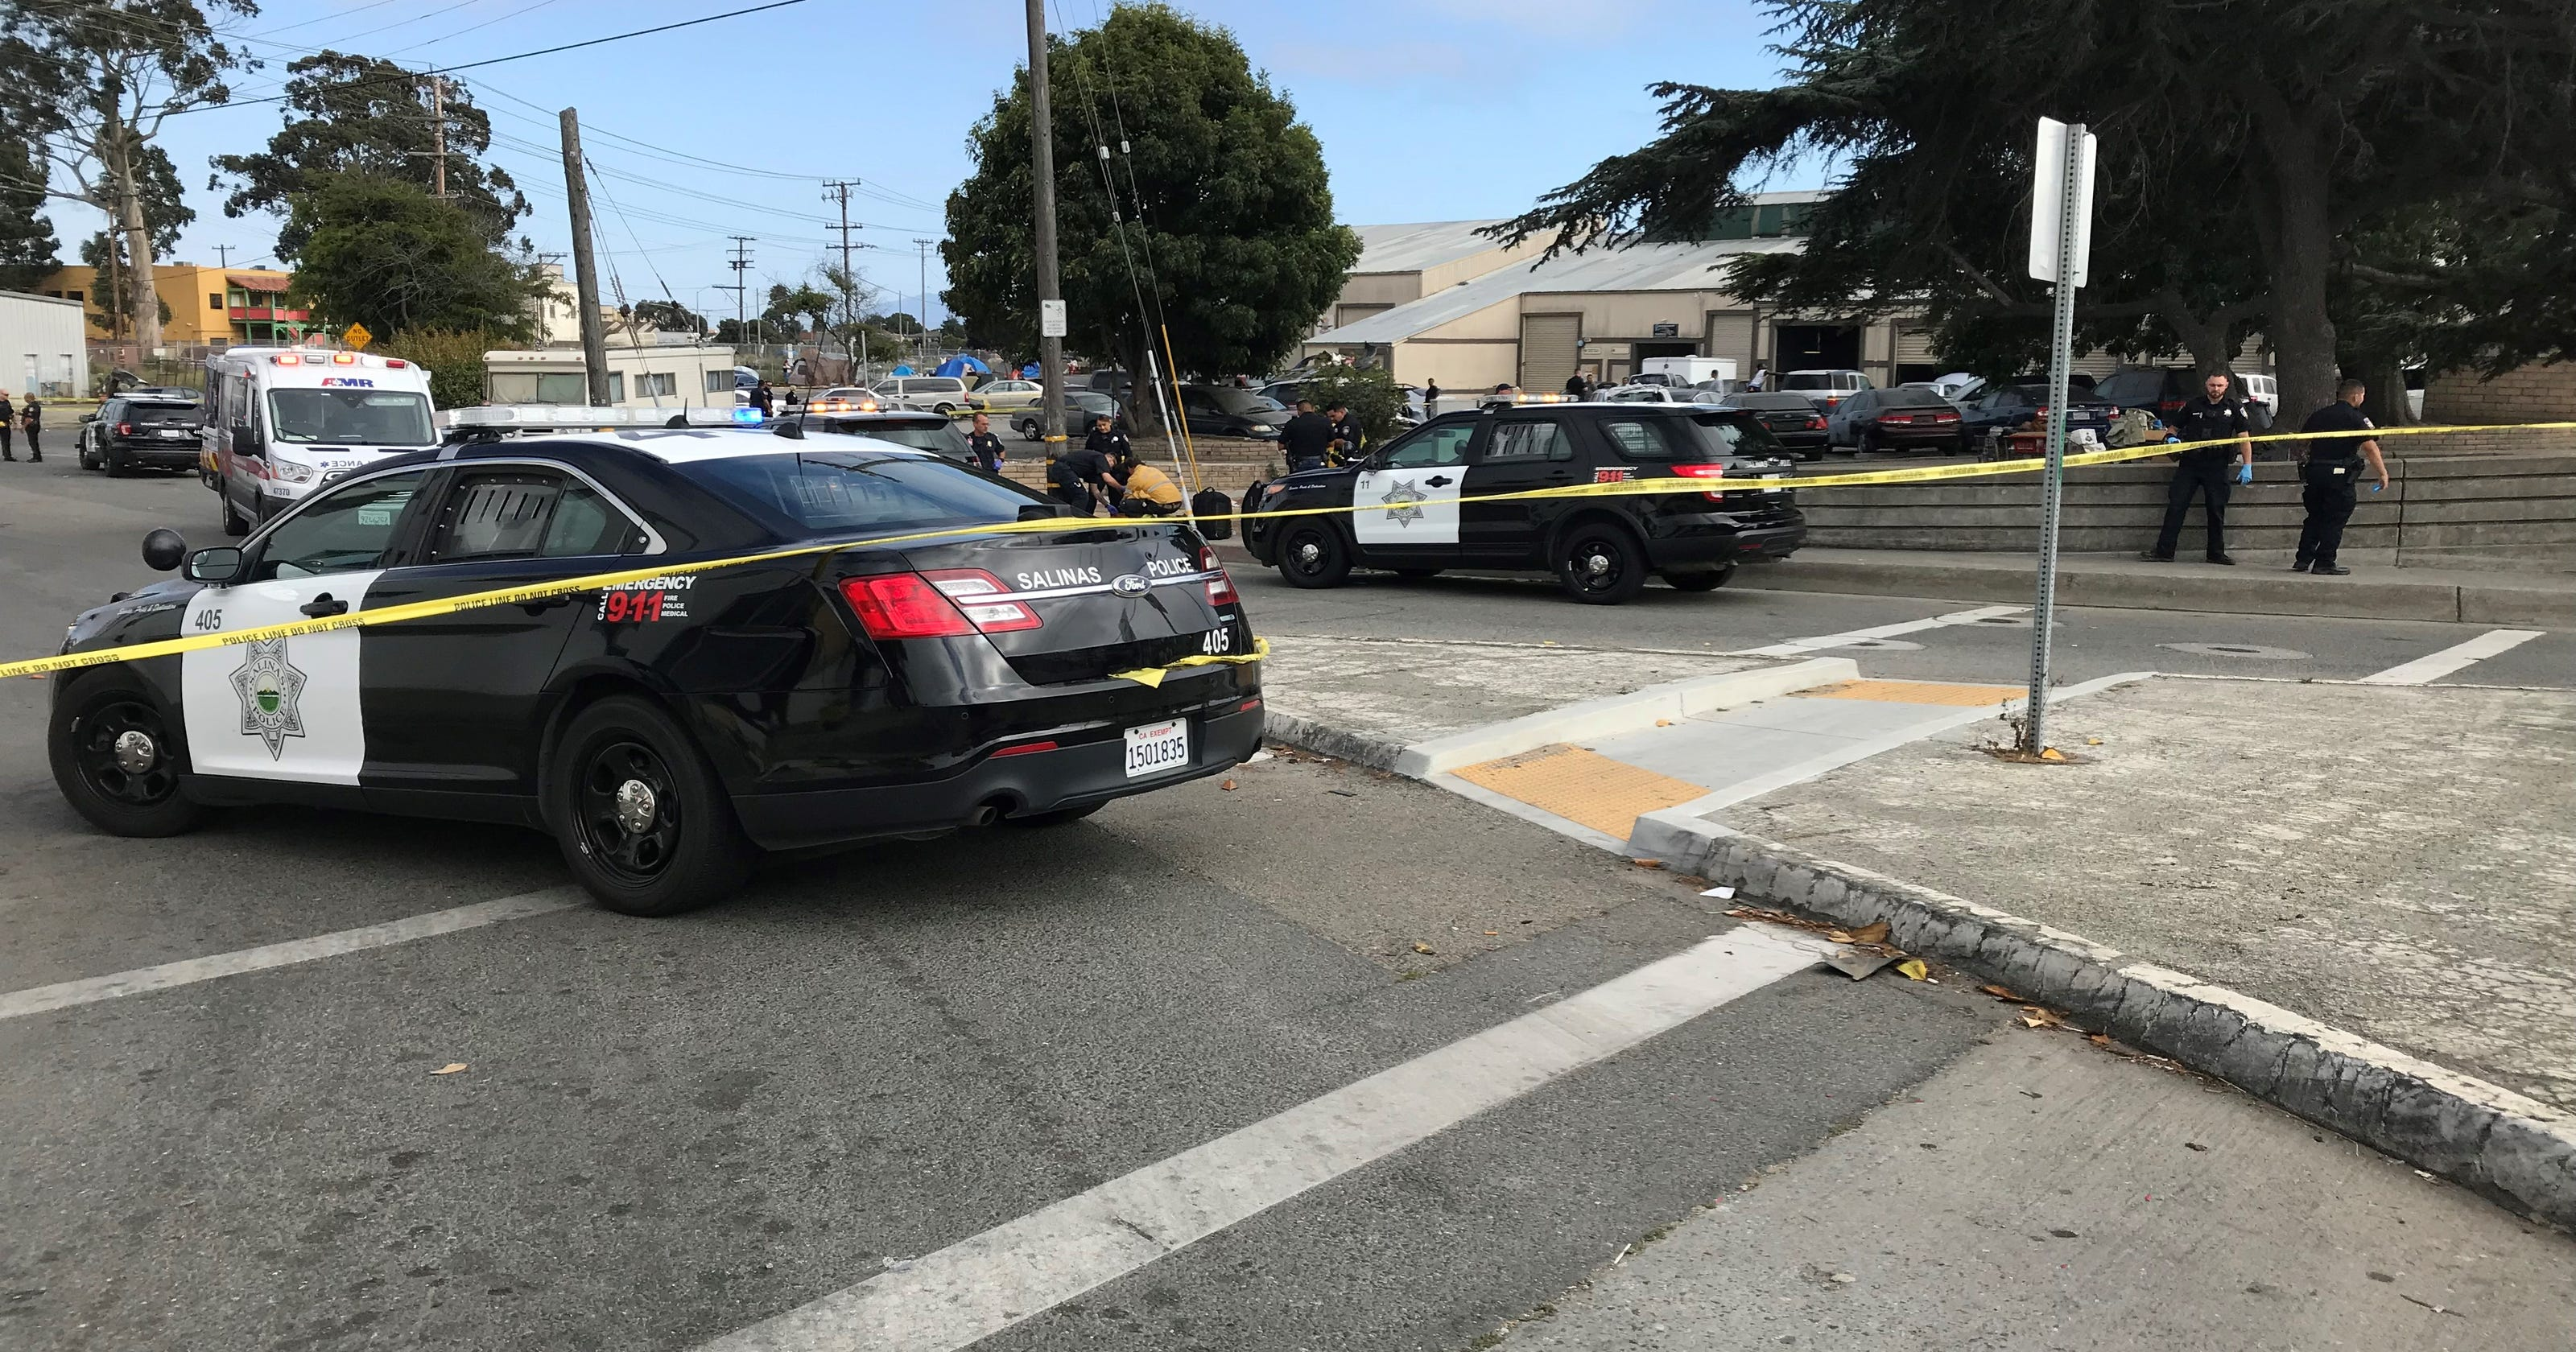 Video Captures Salinas Police Fatally Shooting Man With ...